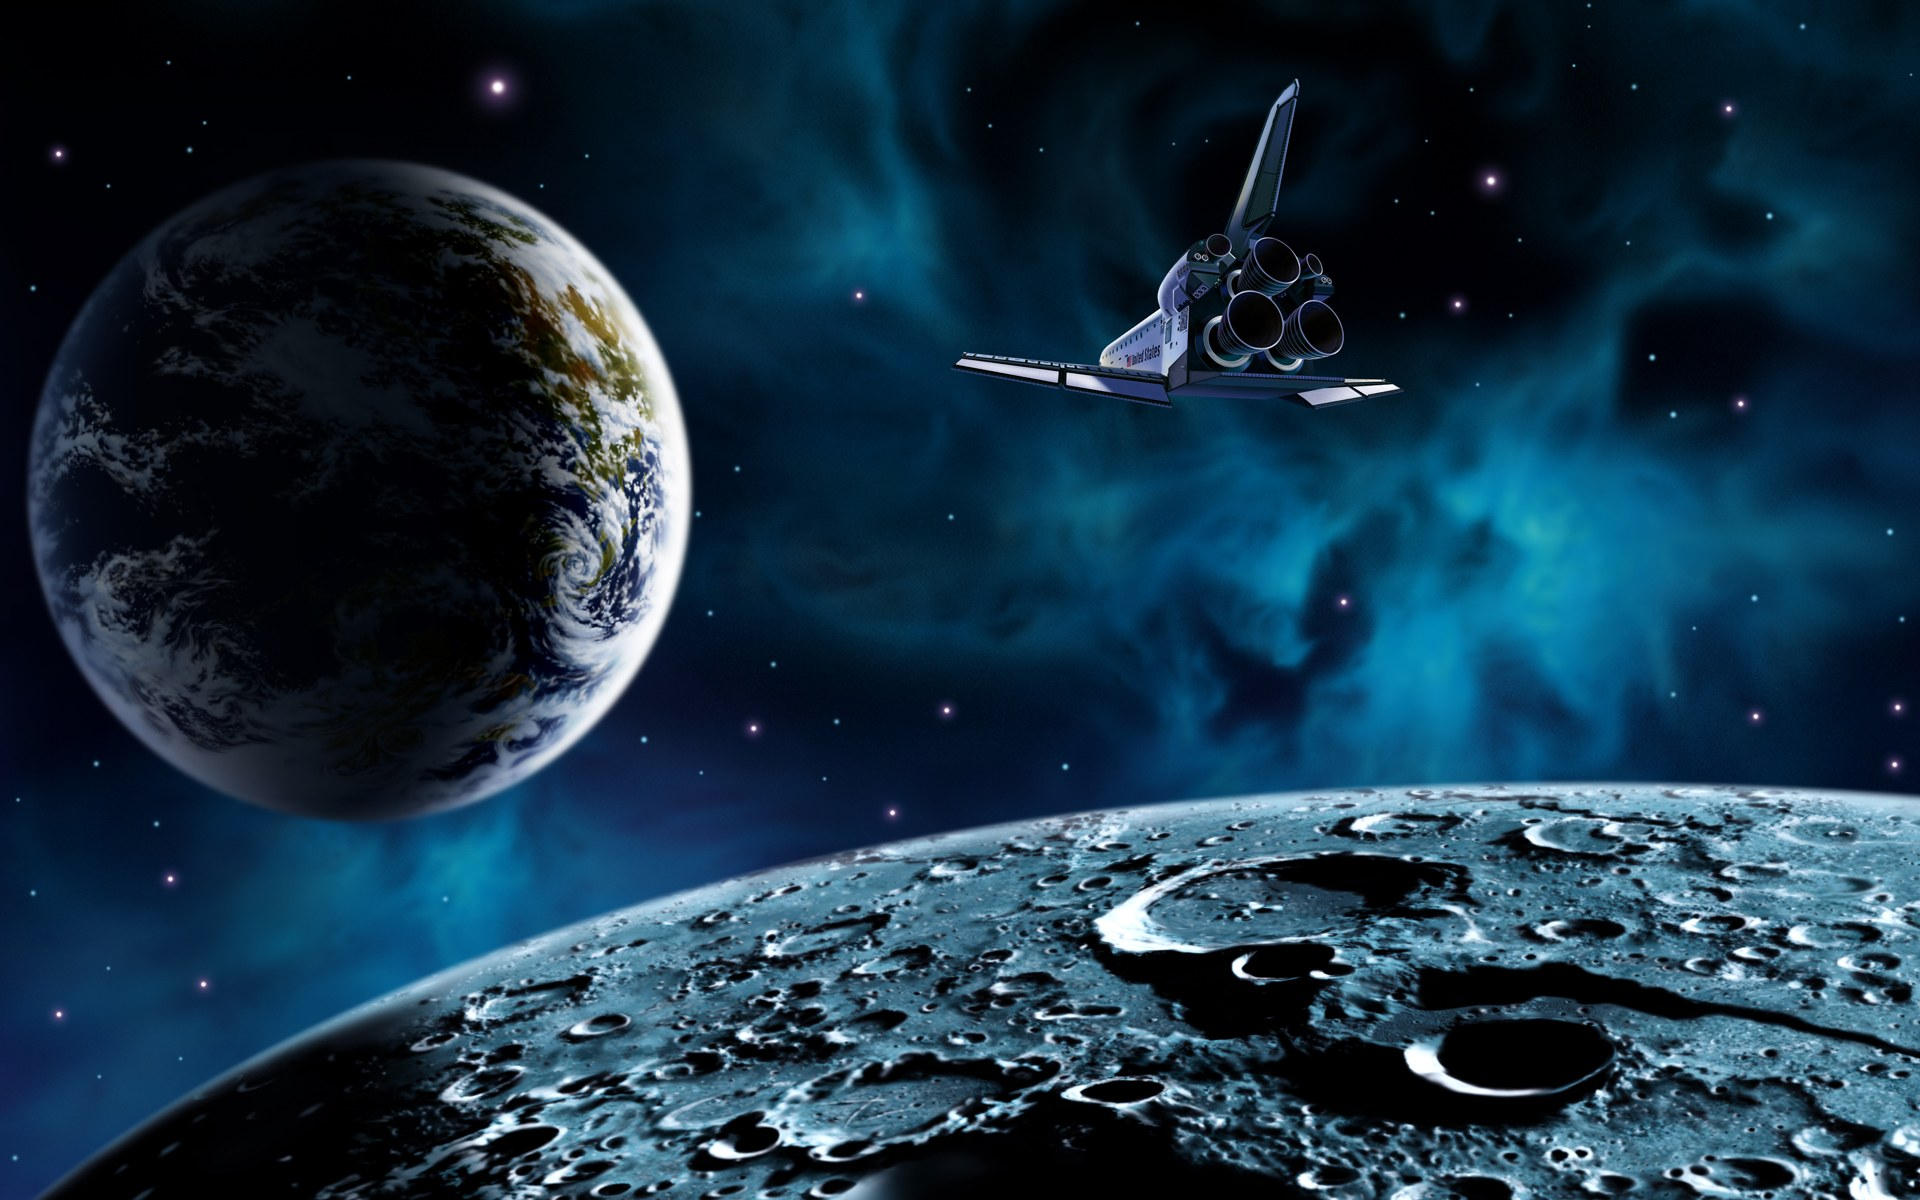 tags space art space art satellite date 10 10 09 resolution 1920x1200 1920x1200